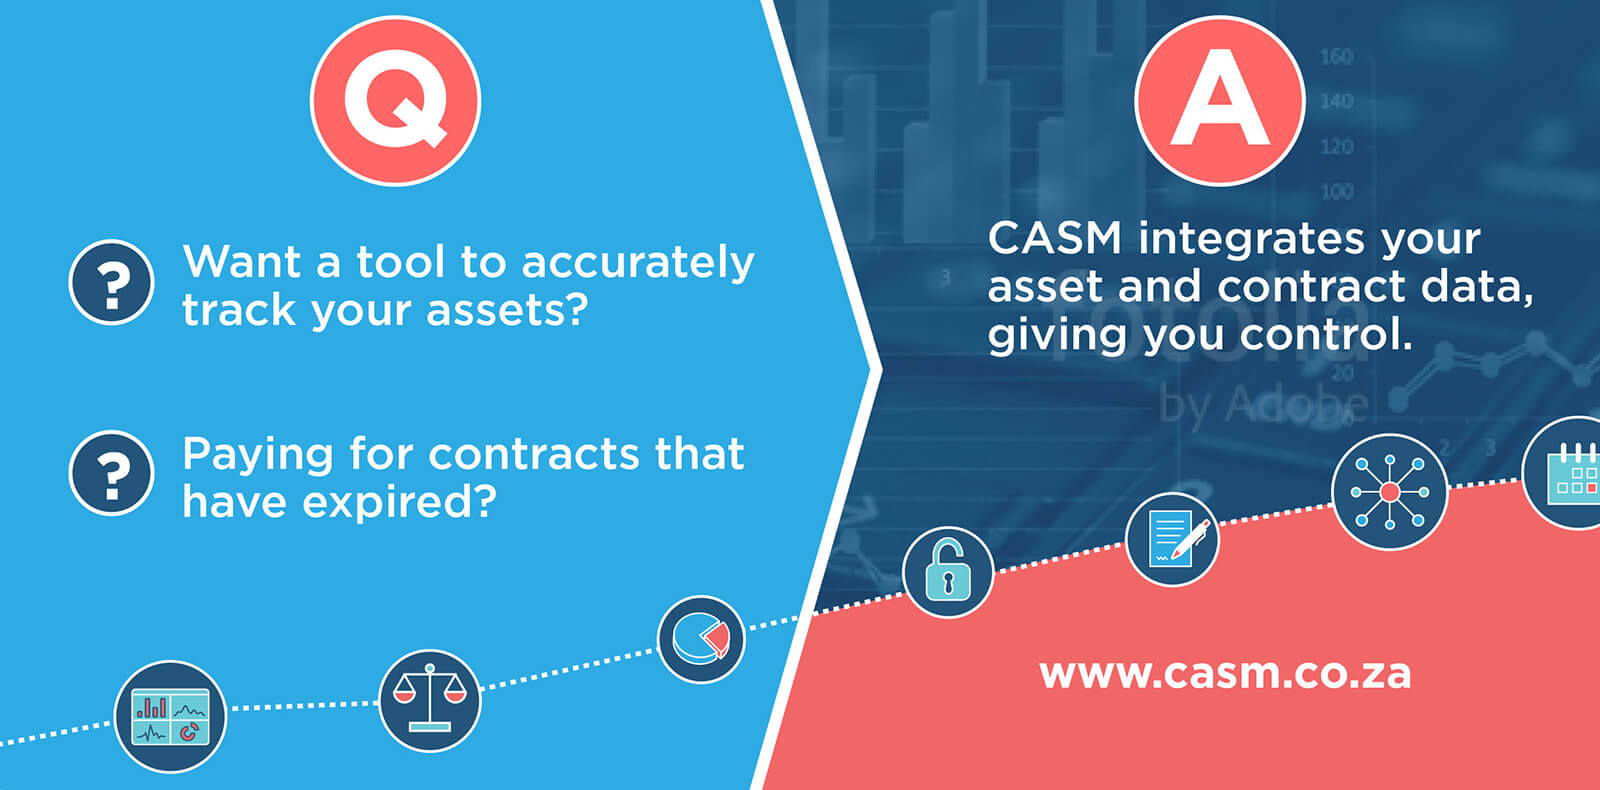 CASM | The benefits of an asset tracking solution